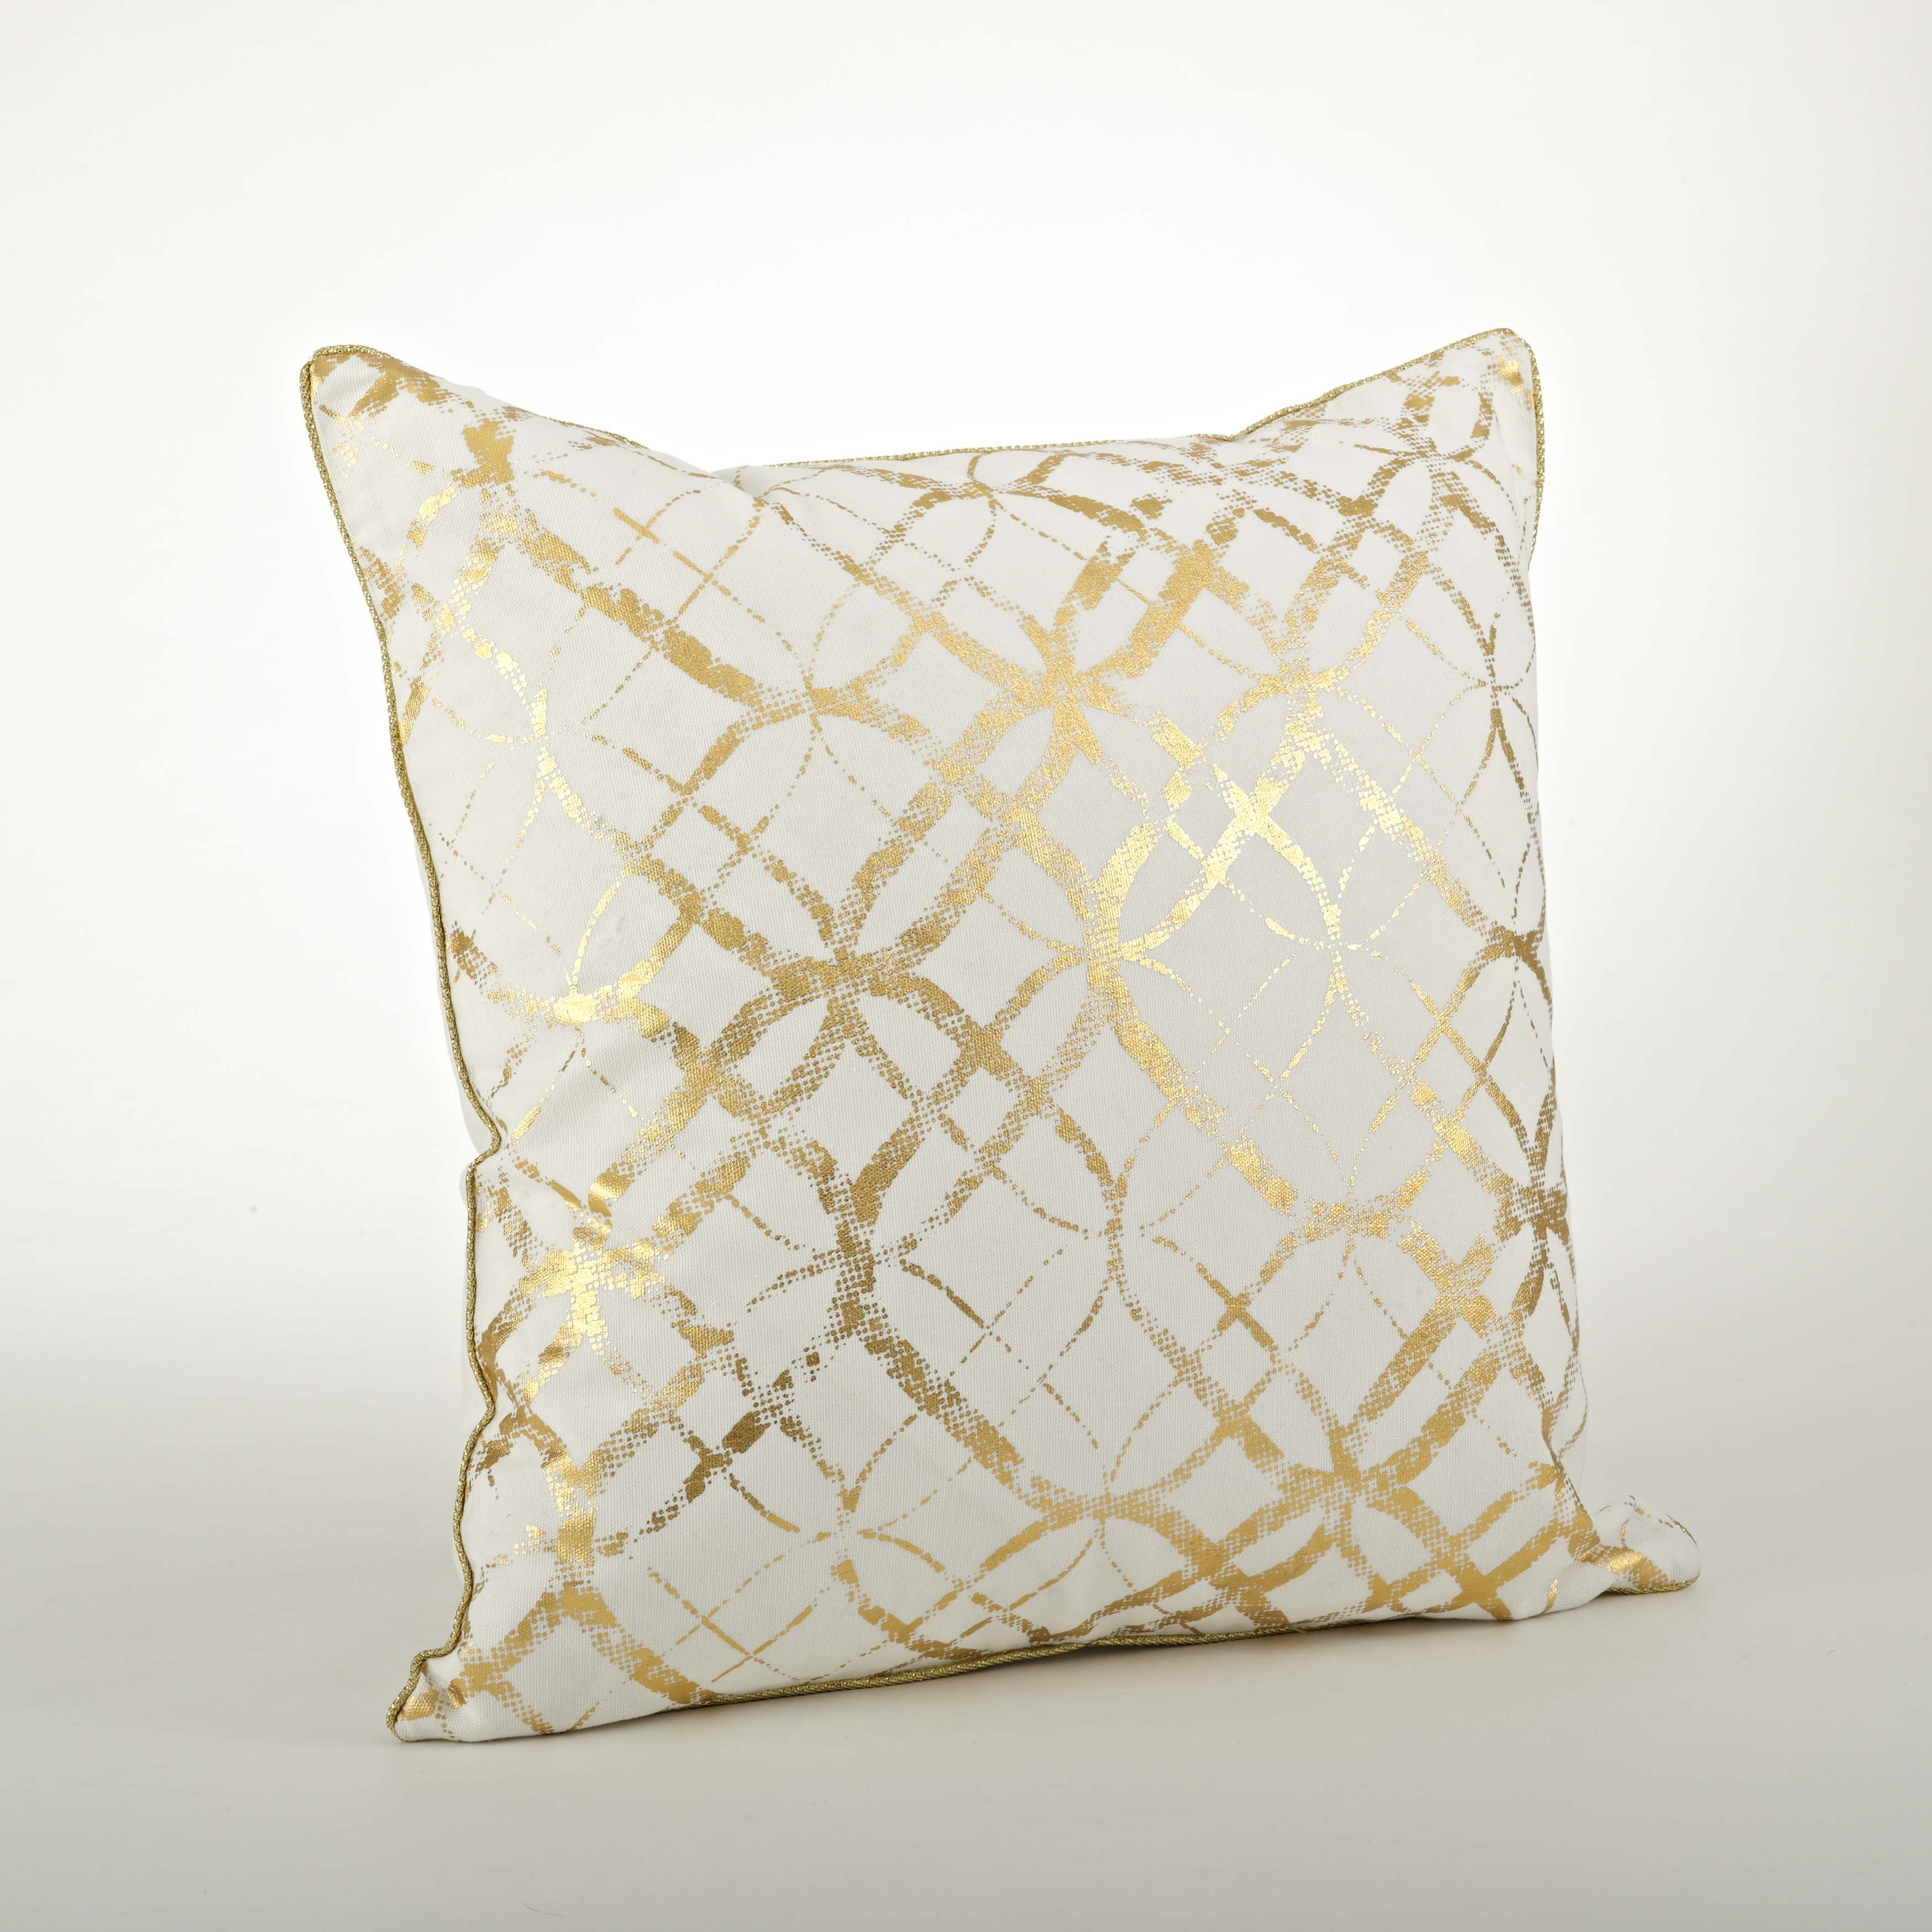 Saro Metallic Foil Print Pillow - 20inch